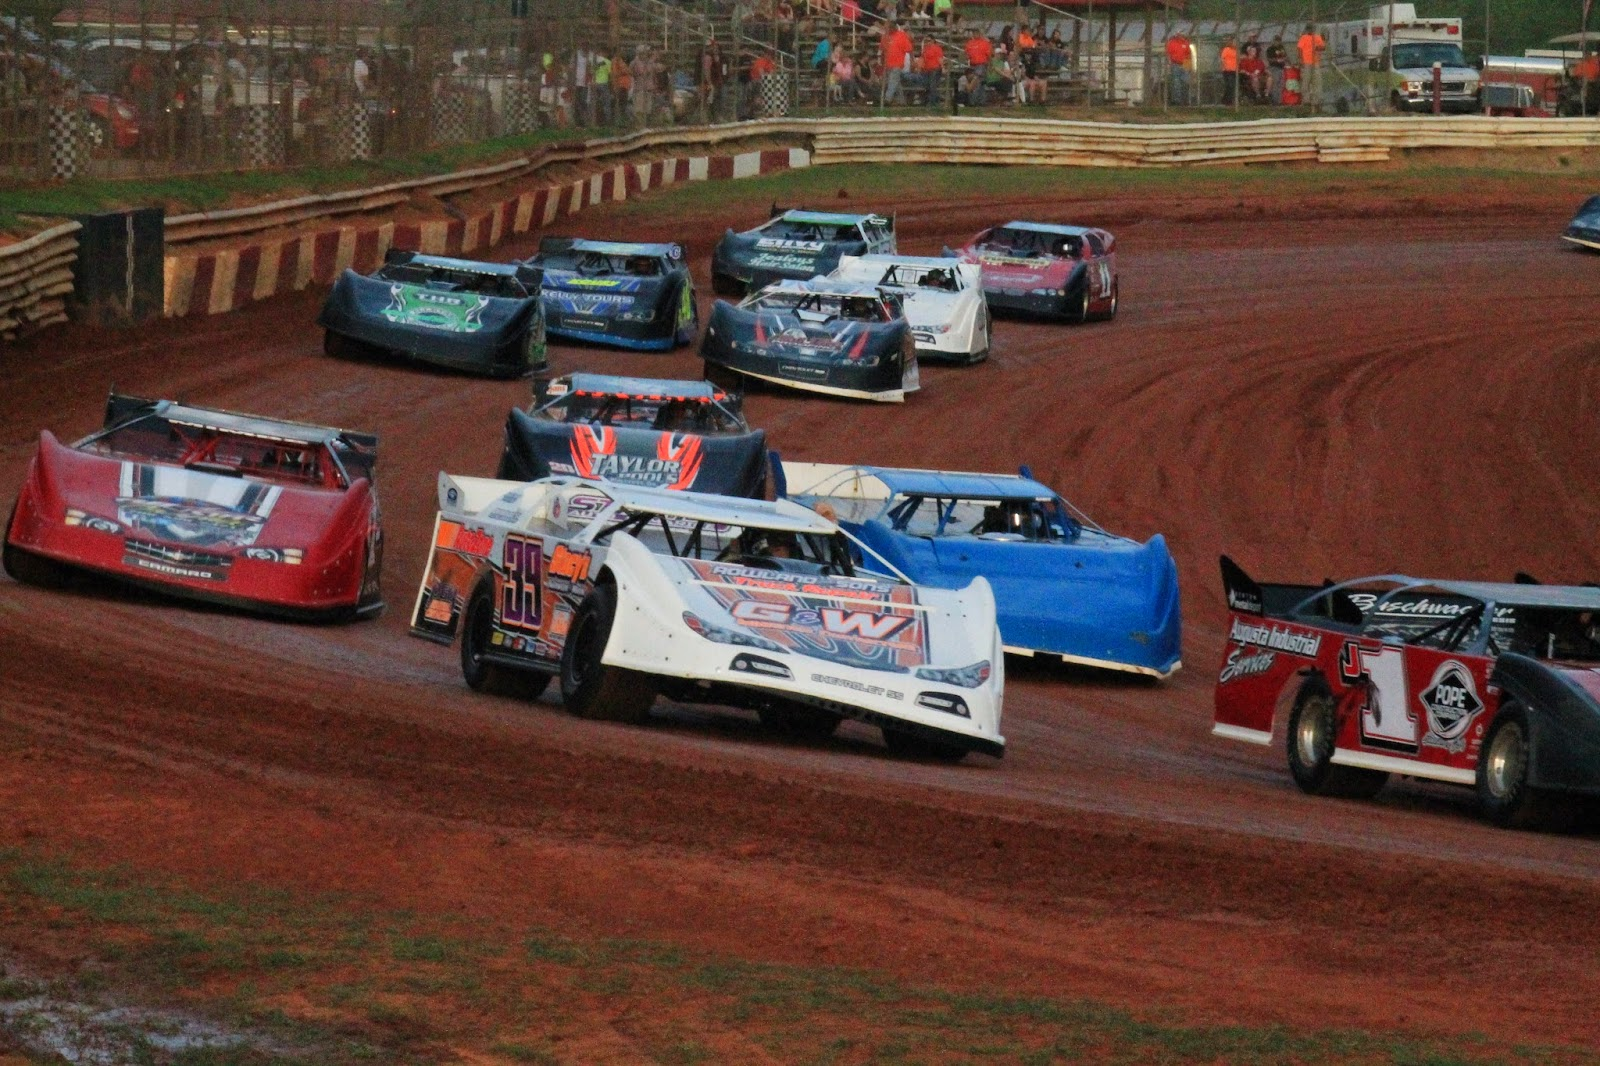 Purvis Family Venue Support Great Side by Side Dirt Track Action at it's Finest!!